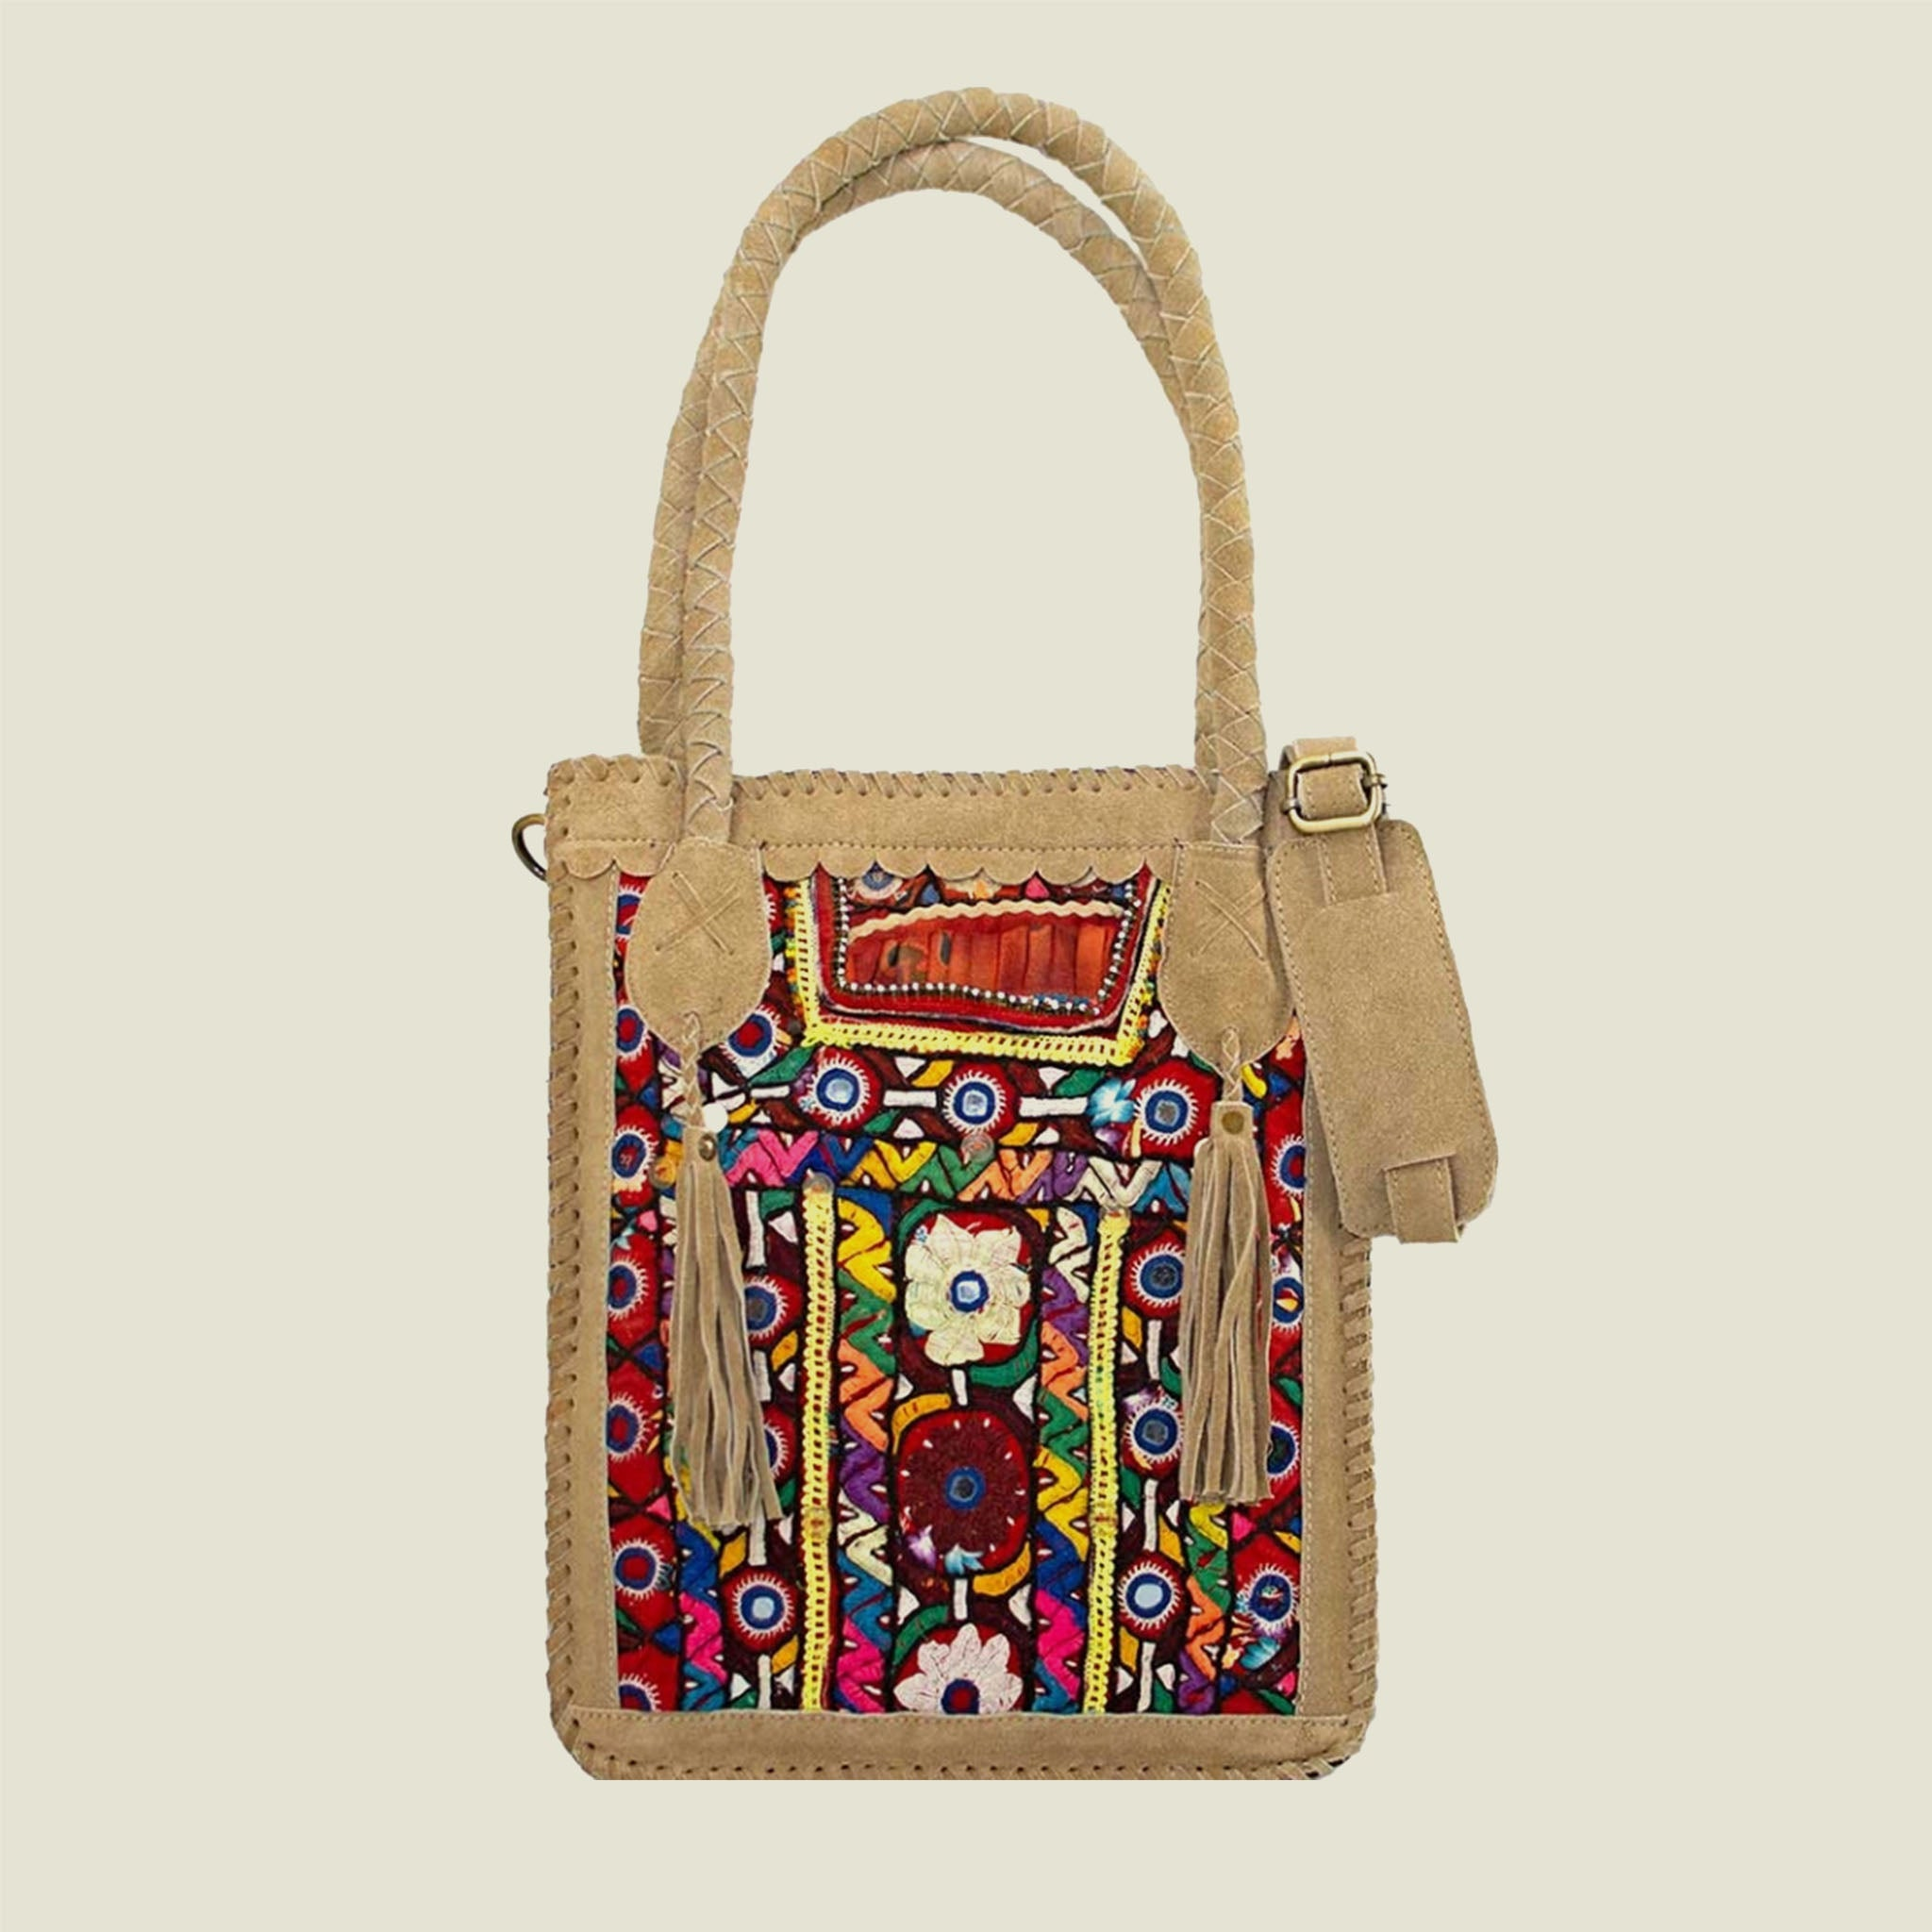 Vintage Tribal Bag 2 - Blackbird General Store